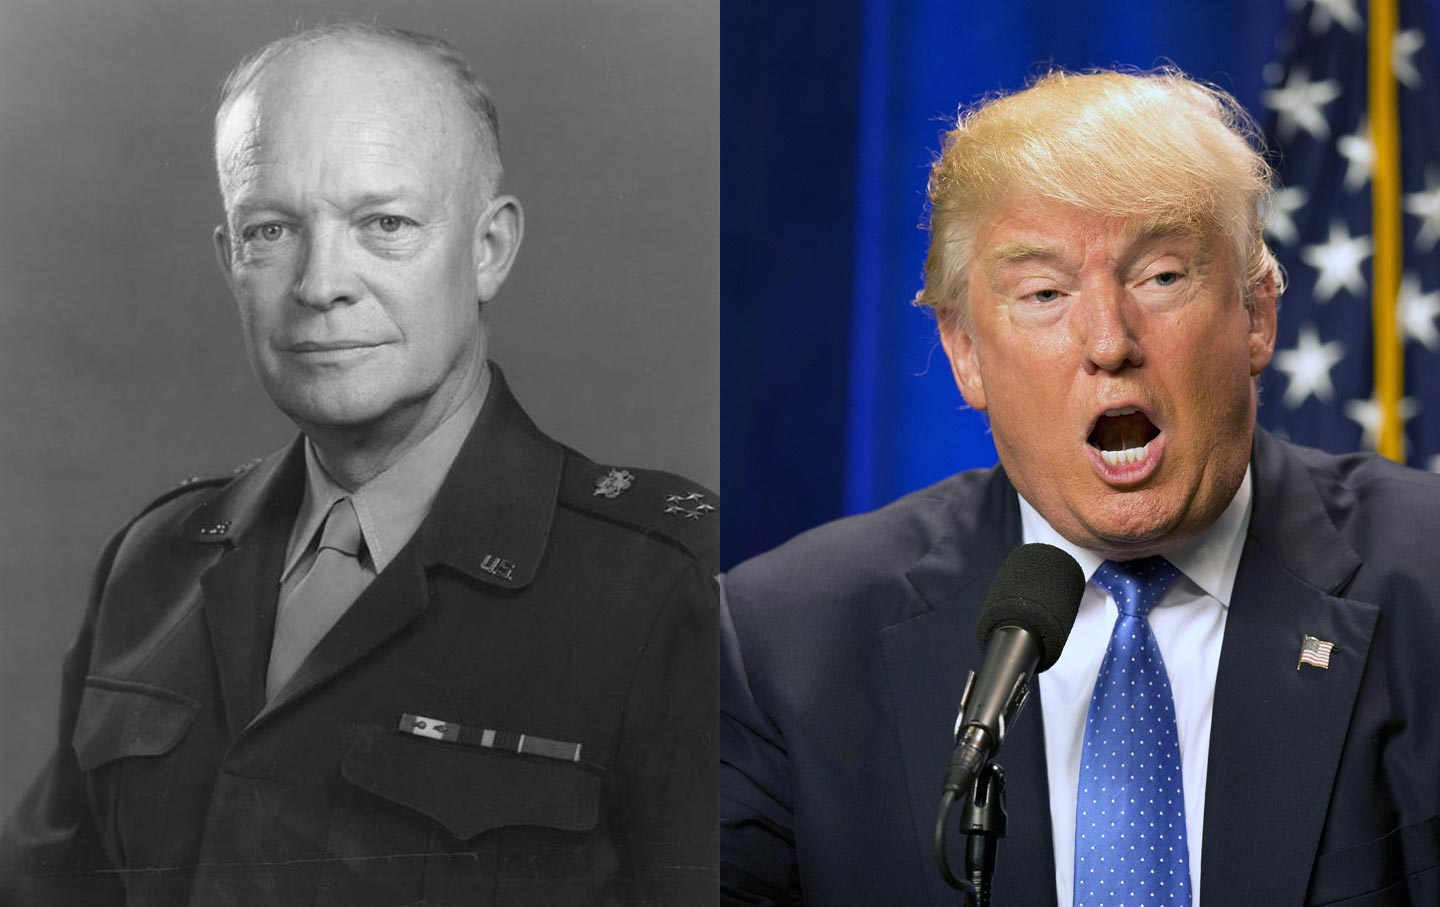 Dwight D. Eisenhower and Donald Trump